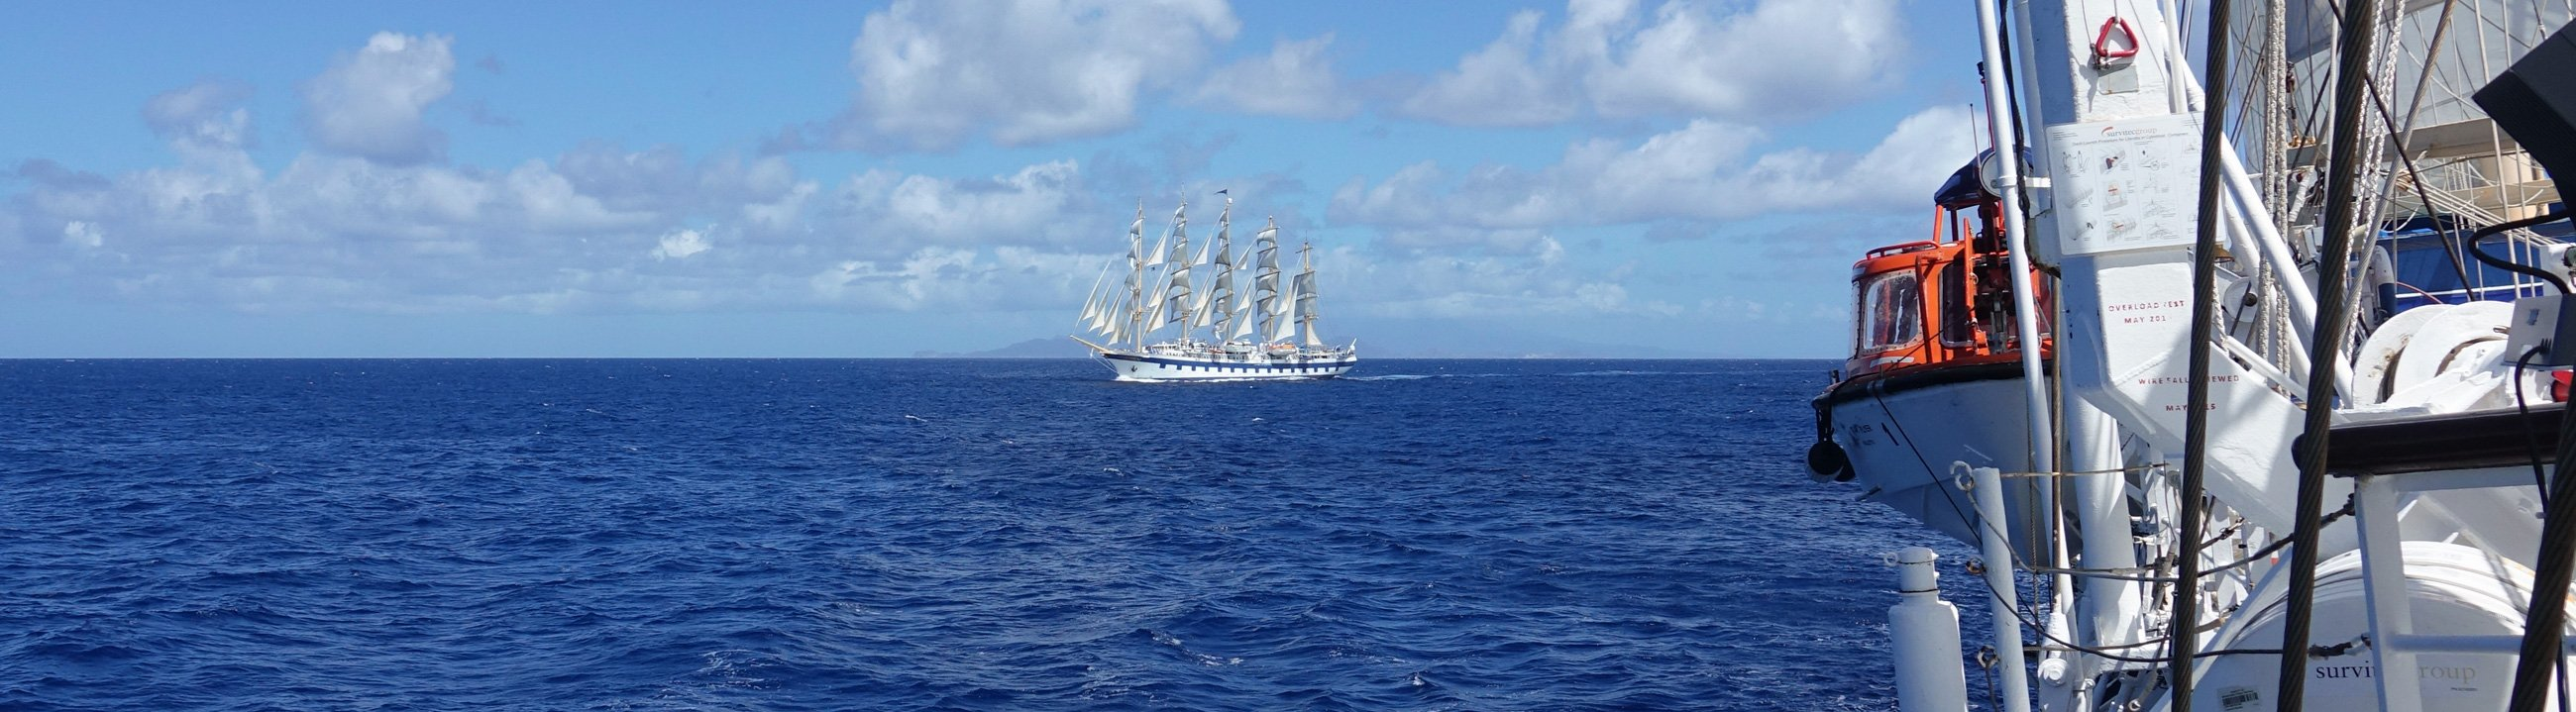 Royal Clipper as seen from Star Flyer